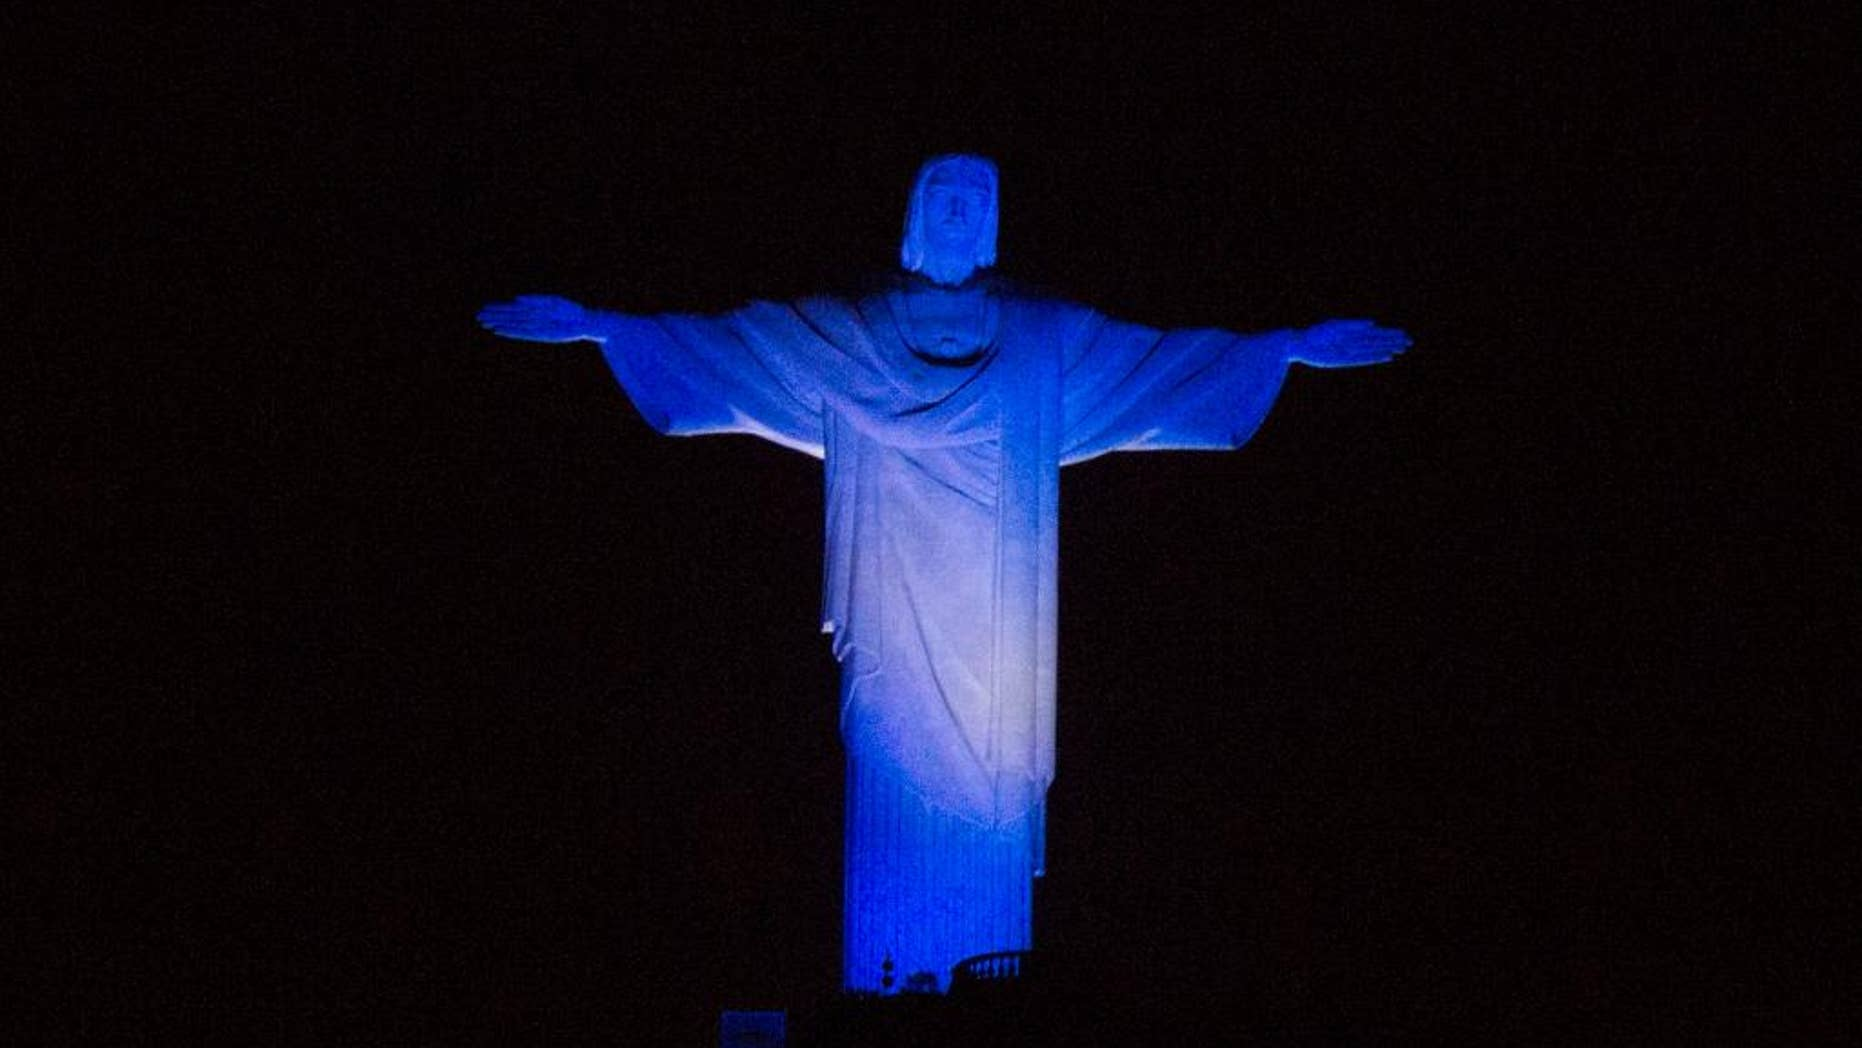 Christ the Redeemer statue is lit with the Argentina team's colors as part of soccer the World Cup, in Rio de Janeiro, Brazil, Saturday, July 12, 2014. Argentina will face Germany for the final match of the world tournament. (AP Photo/Leo Correa)